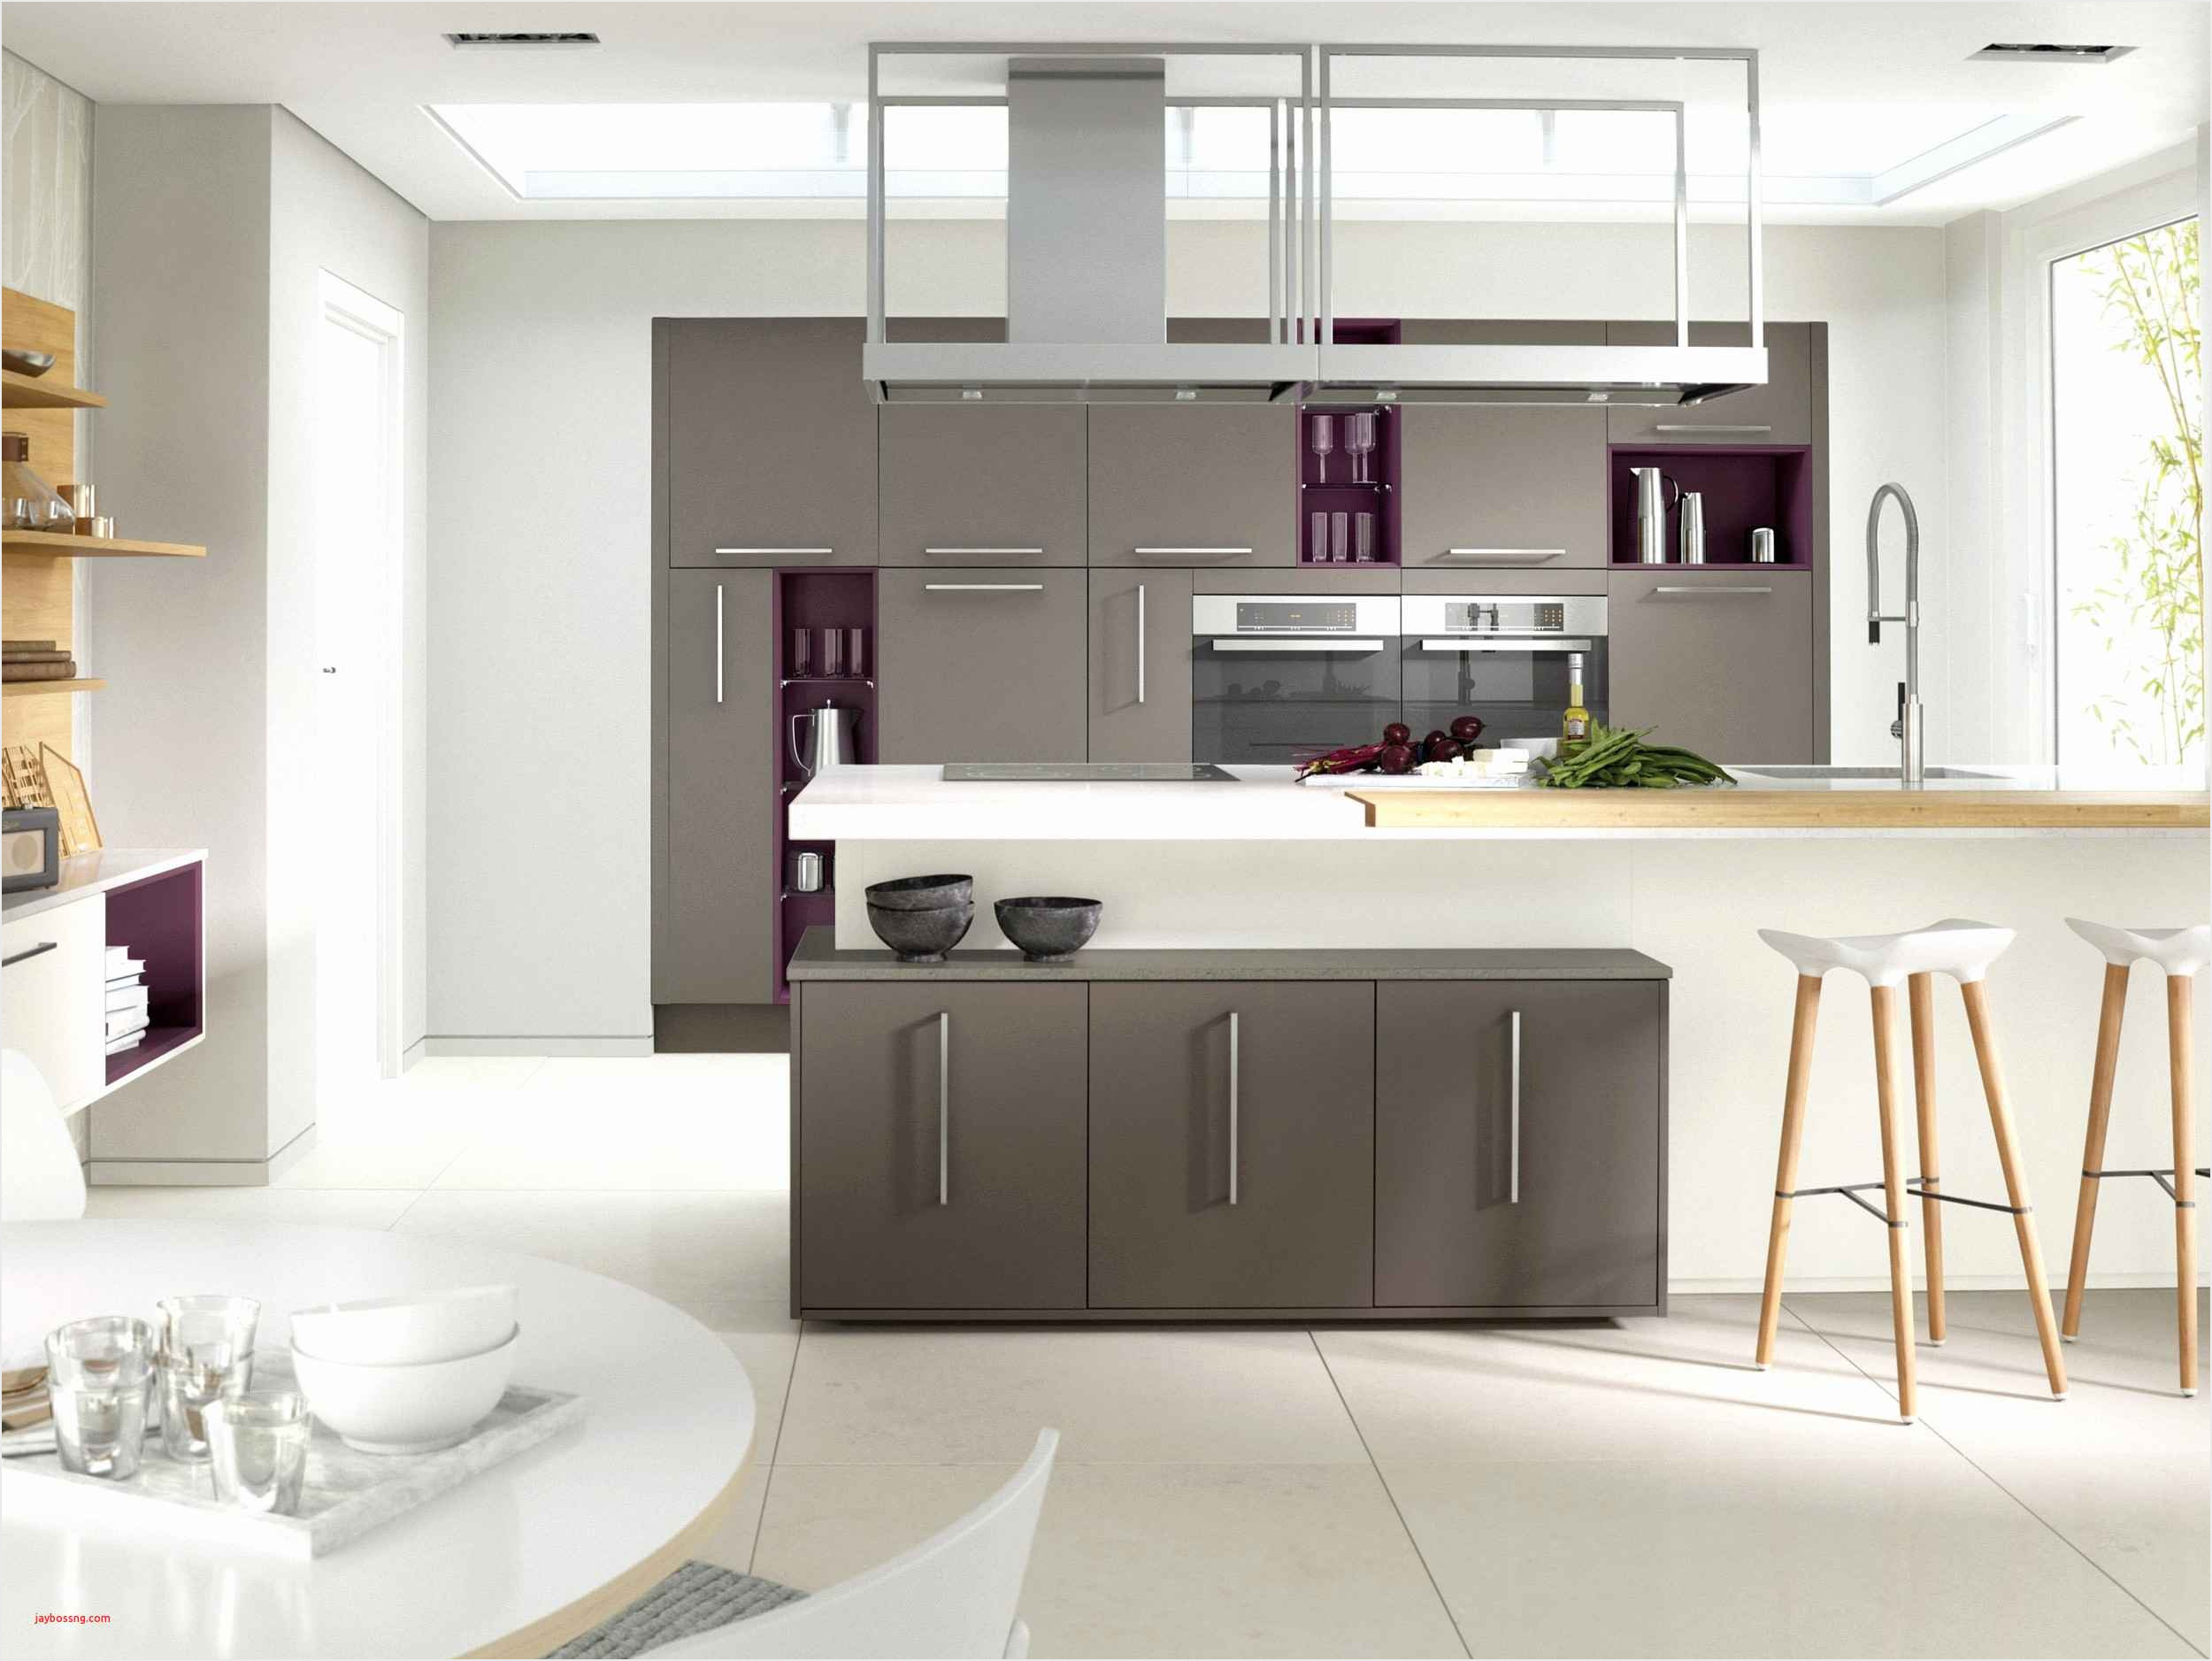 white hardwood floors for sale of where can i buy wood for fireplace i6g karlssonproject com regarding the cheapest kitchen cabinets lovely white kitchen design lovely h sink kitchen vent i 0d awesome